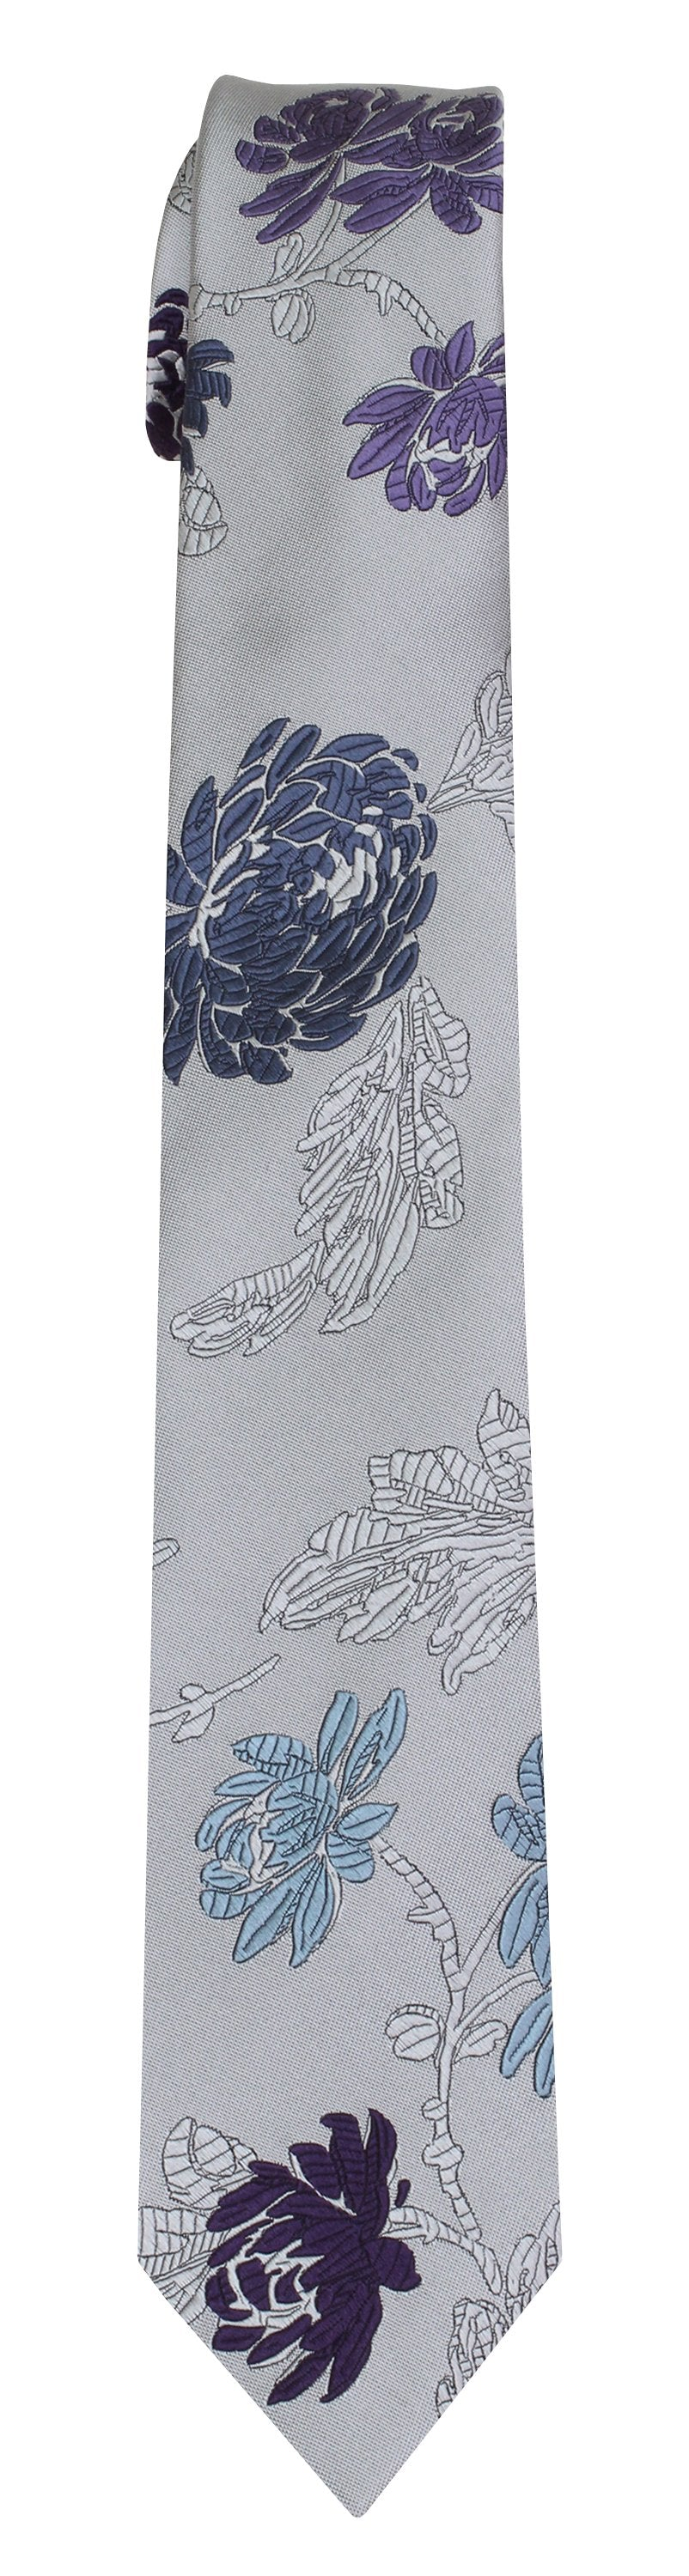 Mimi Fong English Garden Tie in Platinum